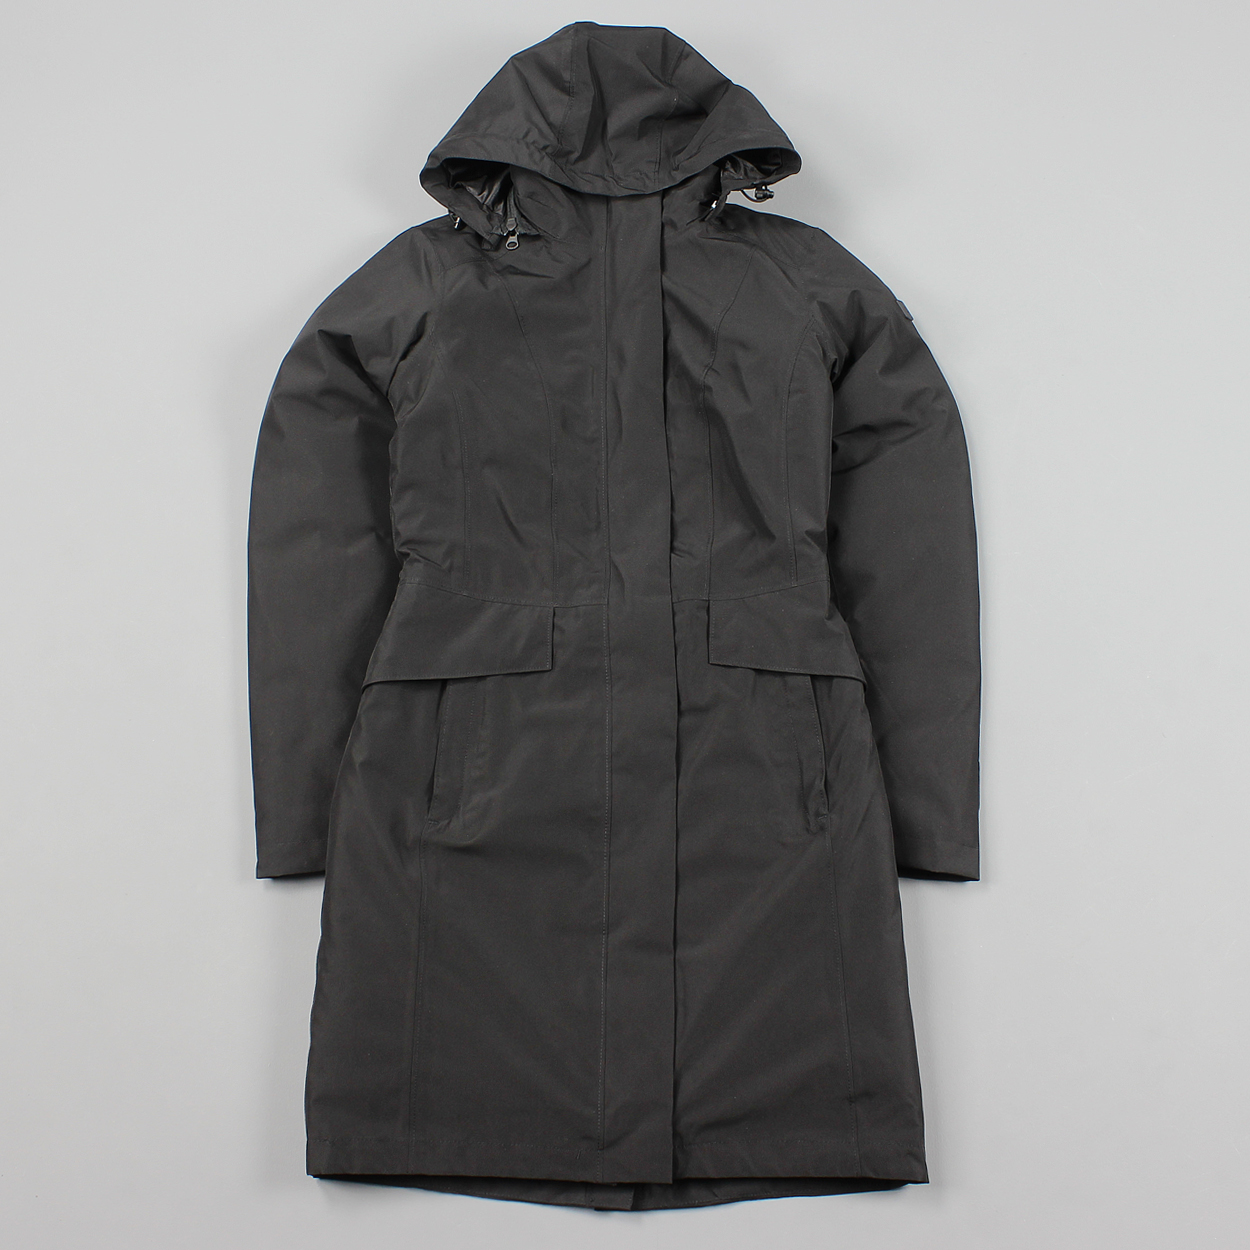 db0864547520 The North Face Womens Suzanne Triclimate 3 in 1 Coat Black Winter £238.00